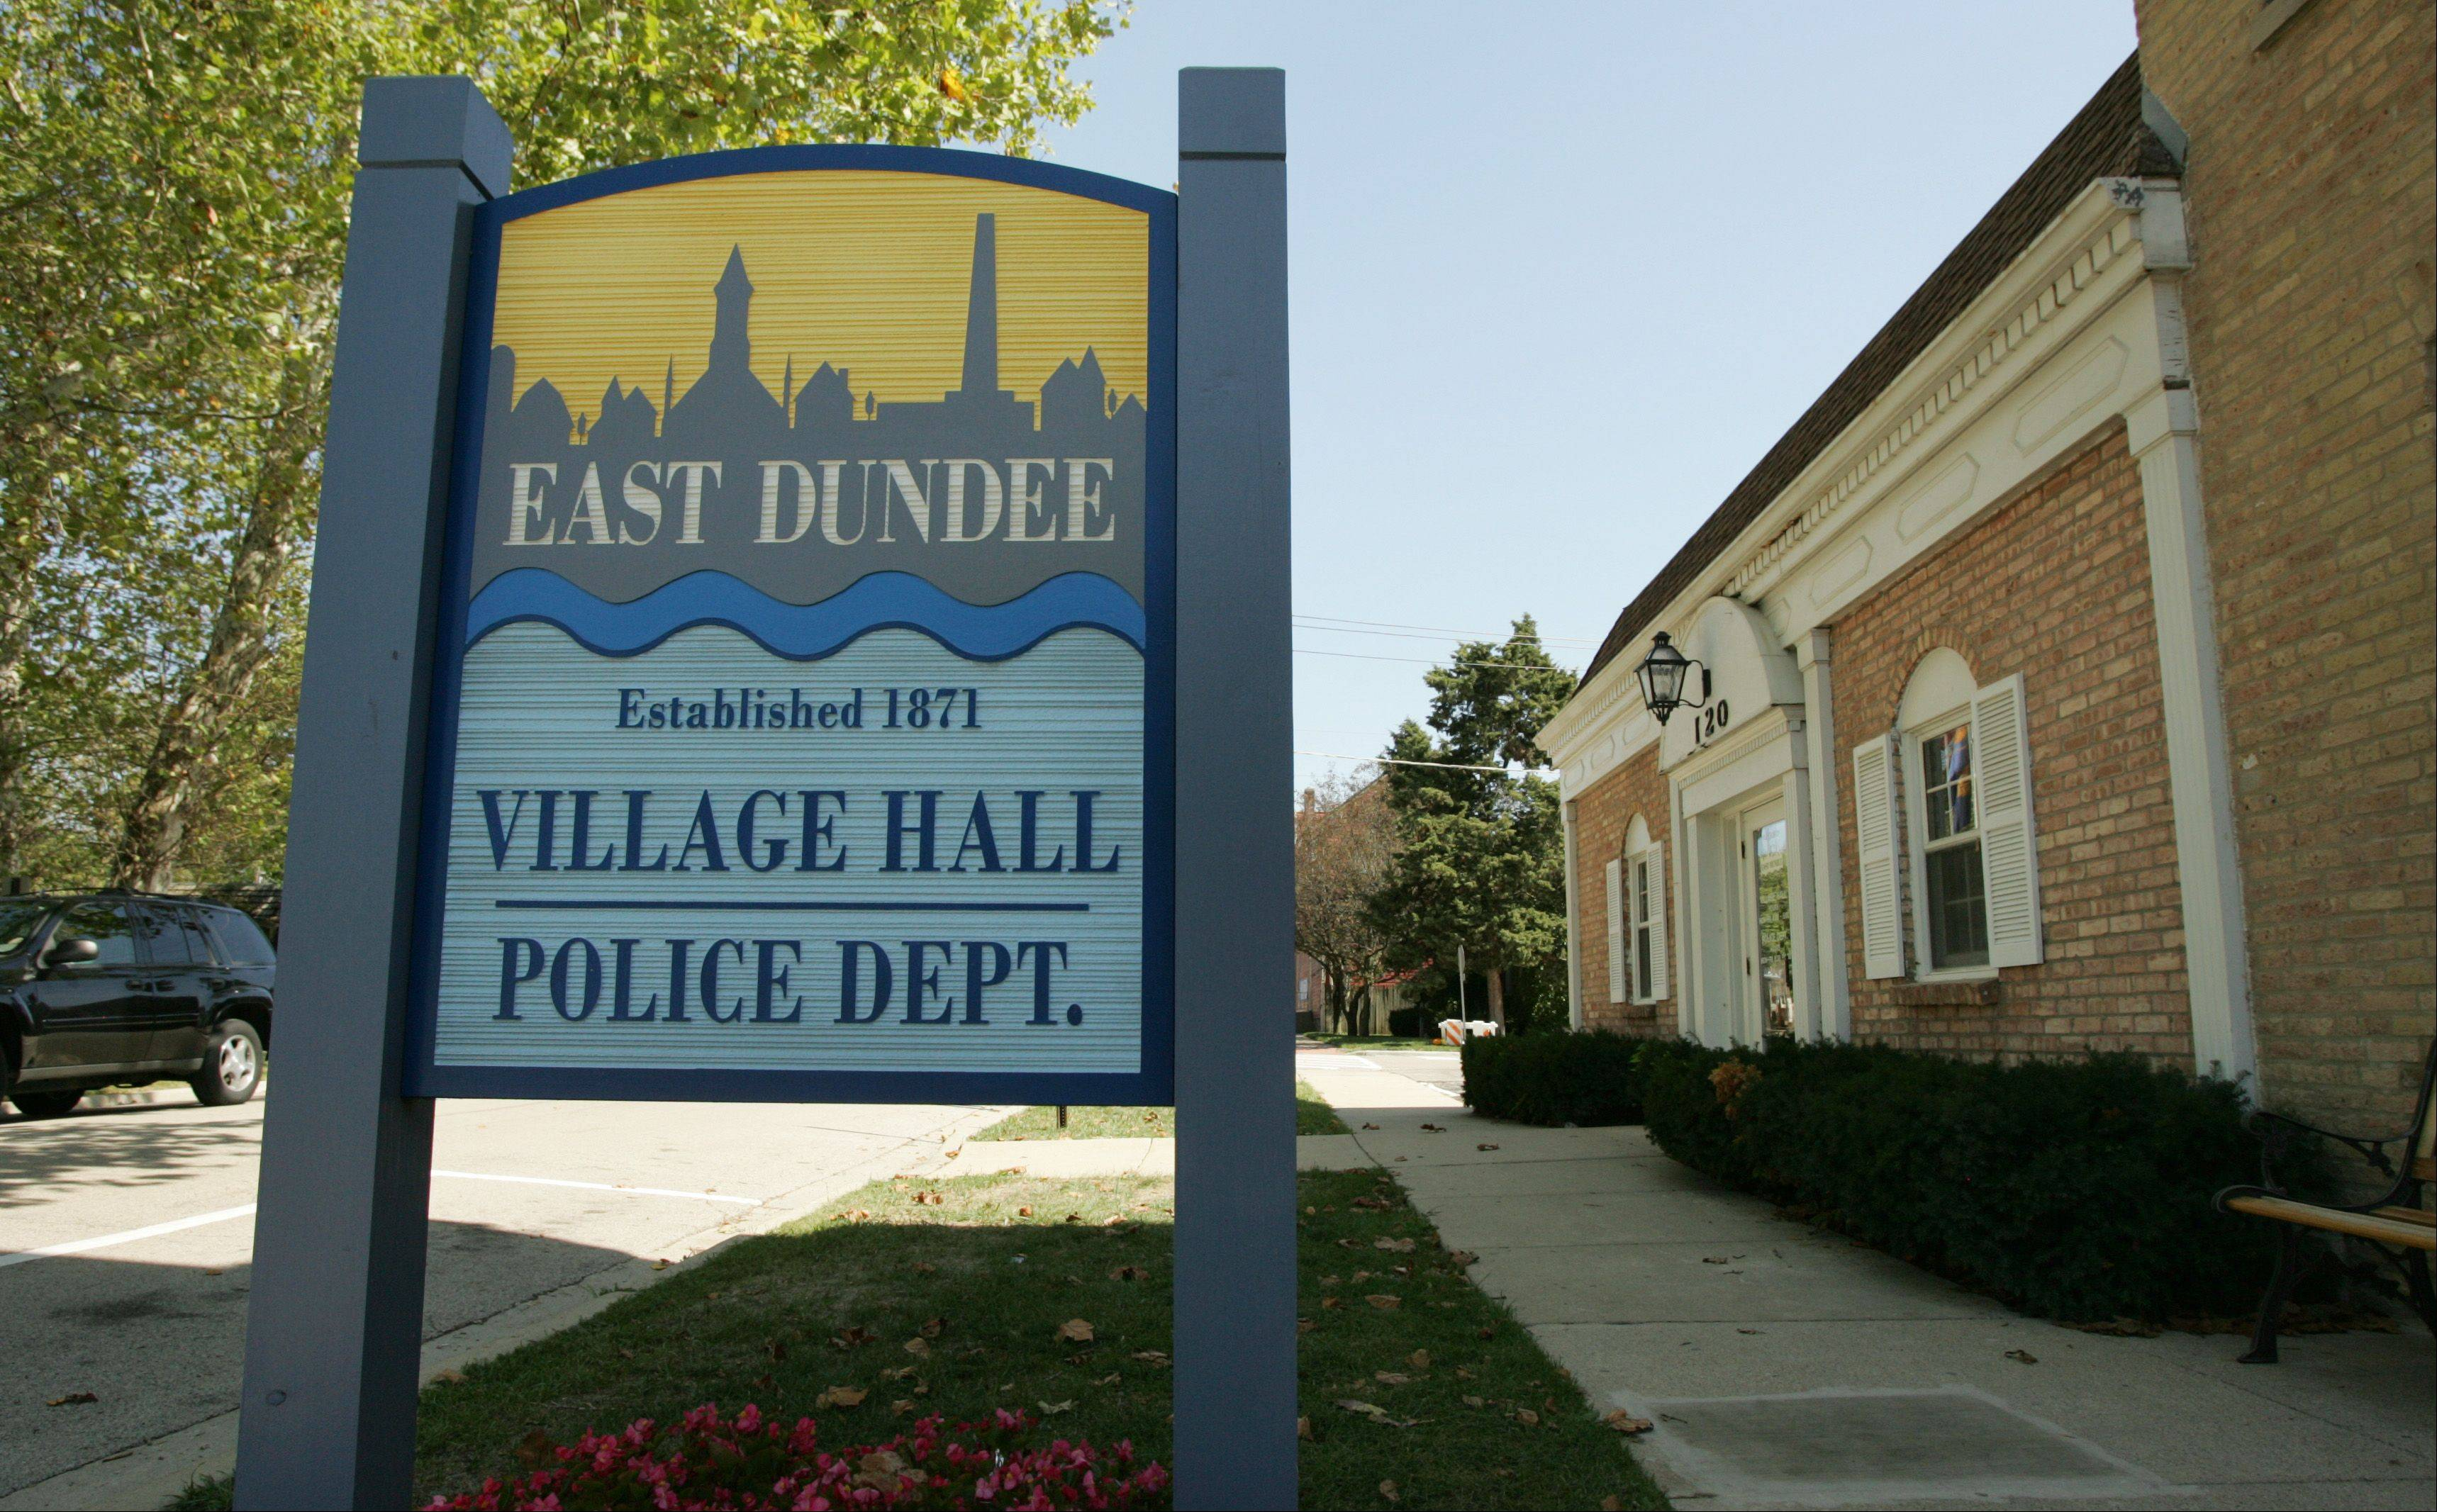 East Dundee's village hall, police station and fire department are all squeezed onto the same block downtown. If the fire district wins voter approval to build a new fire station farther east, the village would contribute to its construction and then revamp the space into a more modern and spacious police station and village hall.